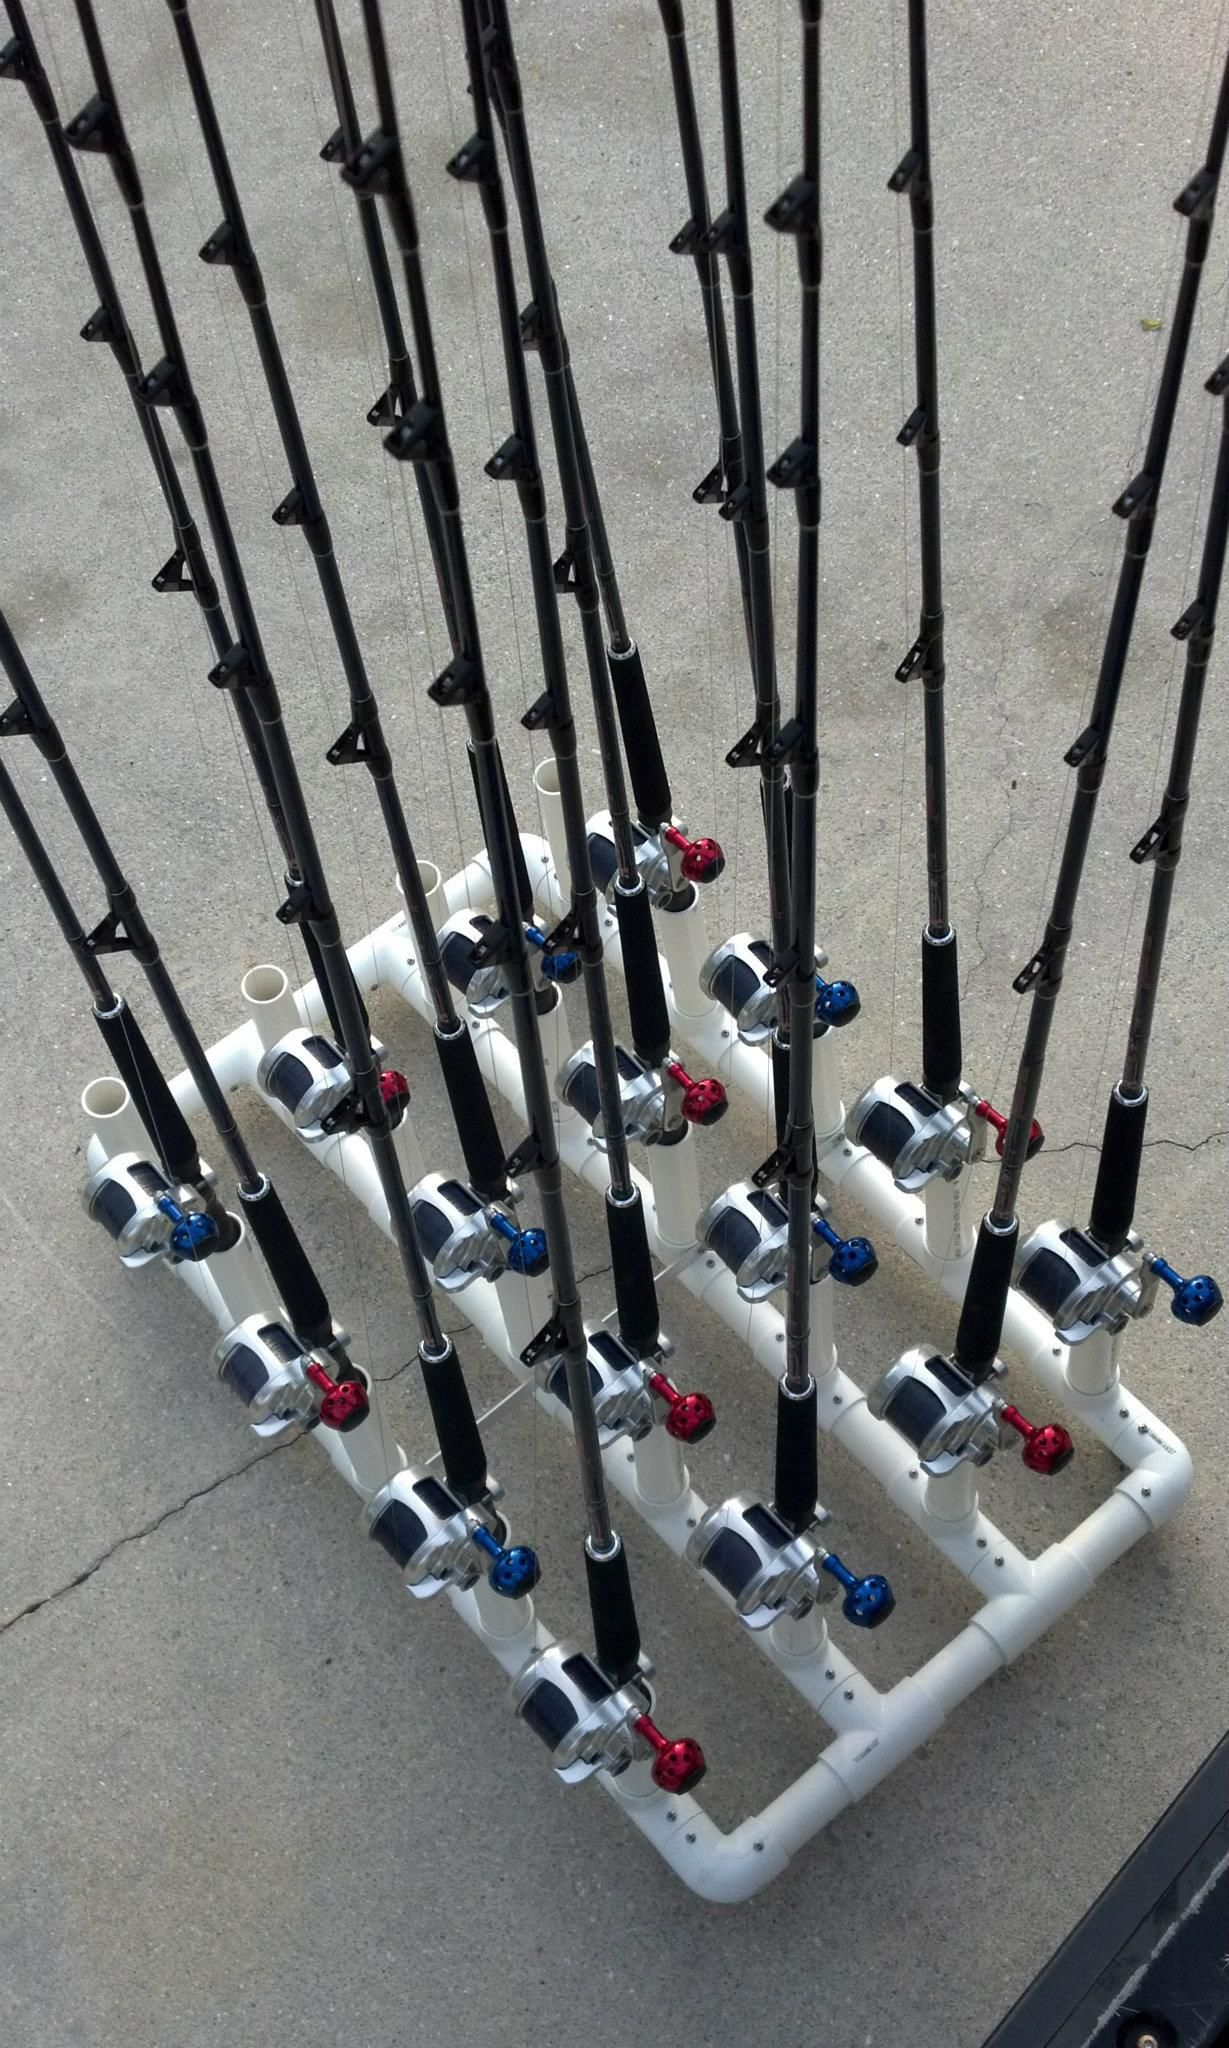 Pvc fishing rod holder ideas fishing rod holder for Homemade fishing rod storage ideas